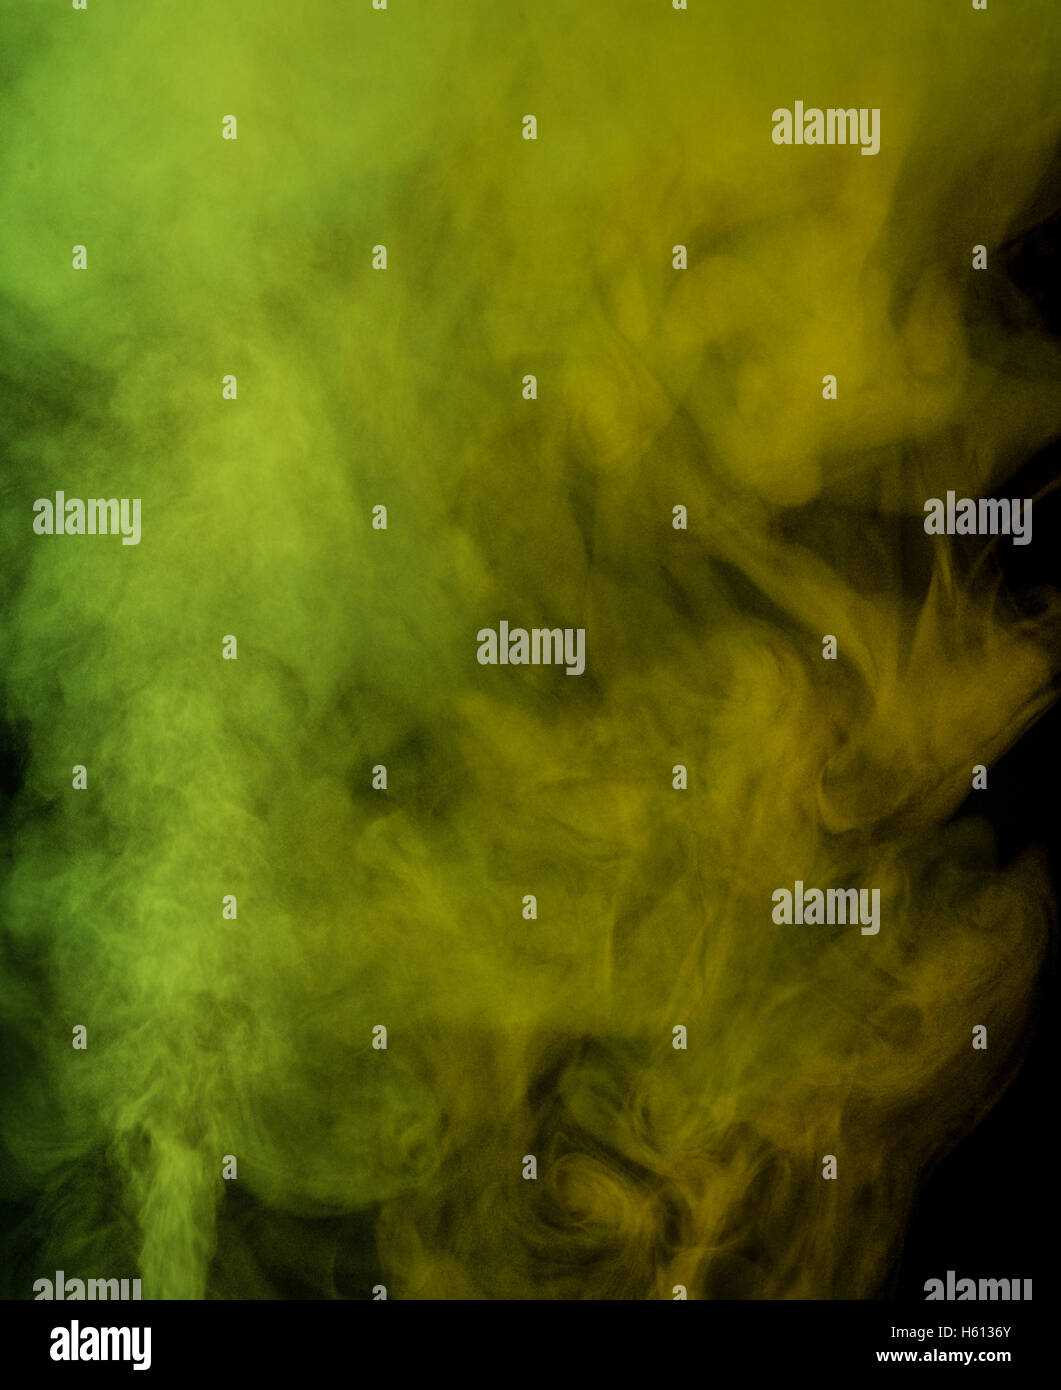 Abstract green yellow water vapor on a black background. Texture. Design elements. Abstract art. Steam the humidifier. - Stock Image